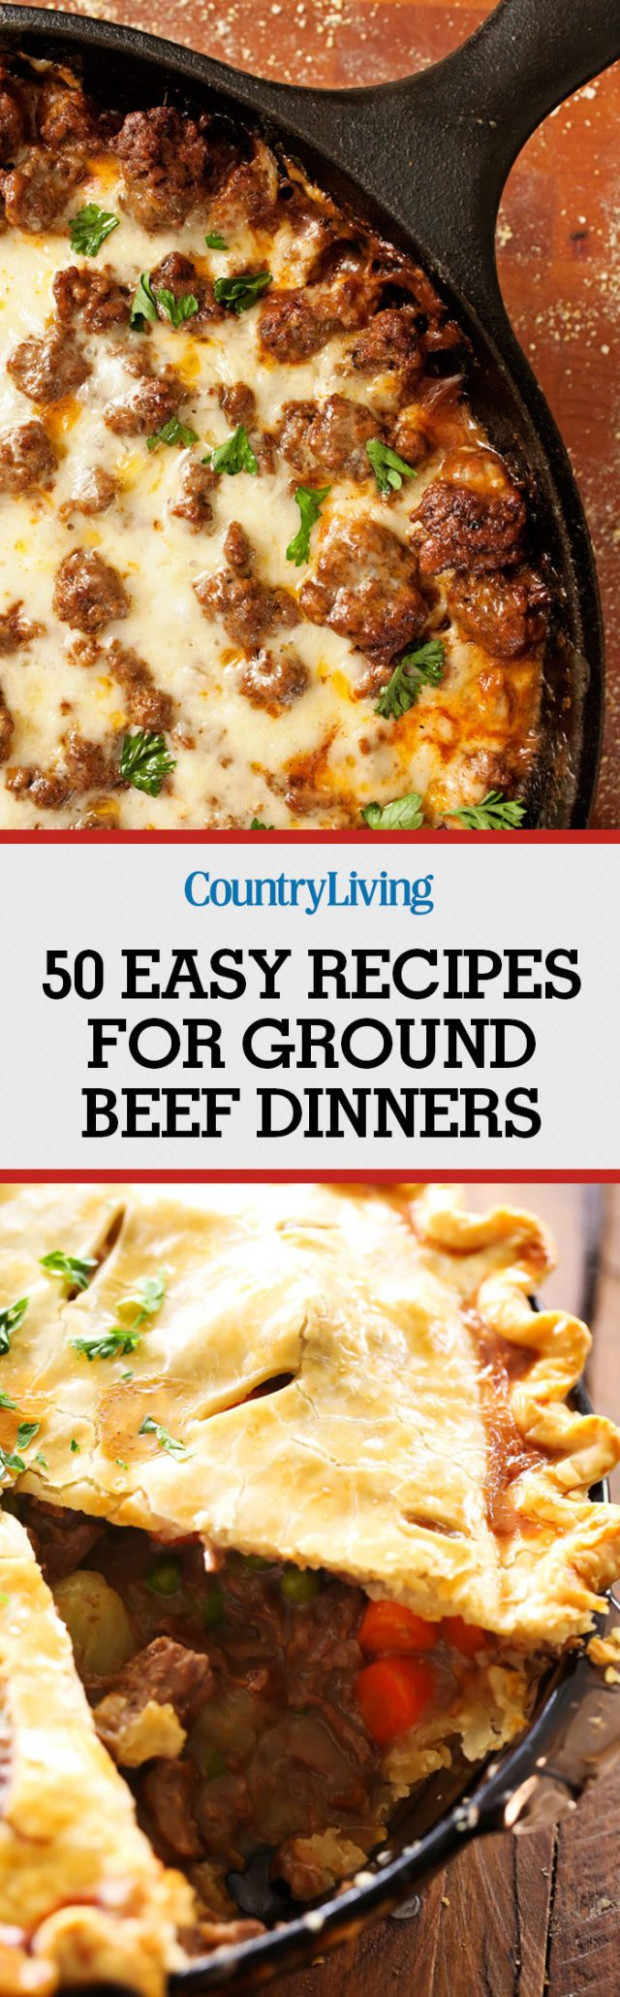 44 Ground Beef Recipes Your Whole Family Will Want For ..